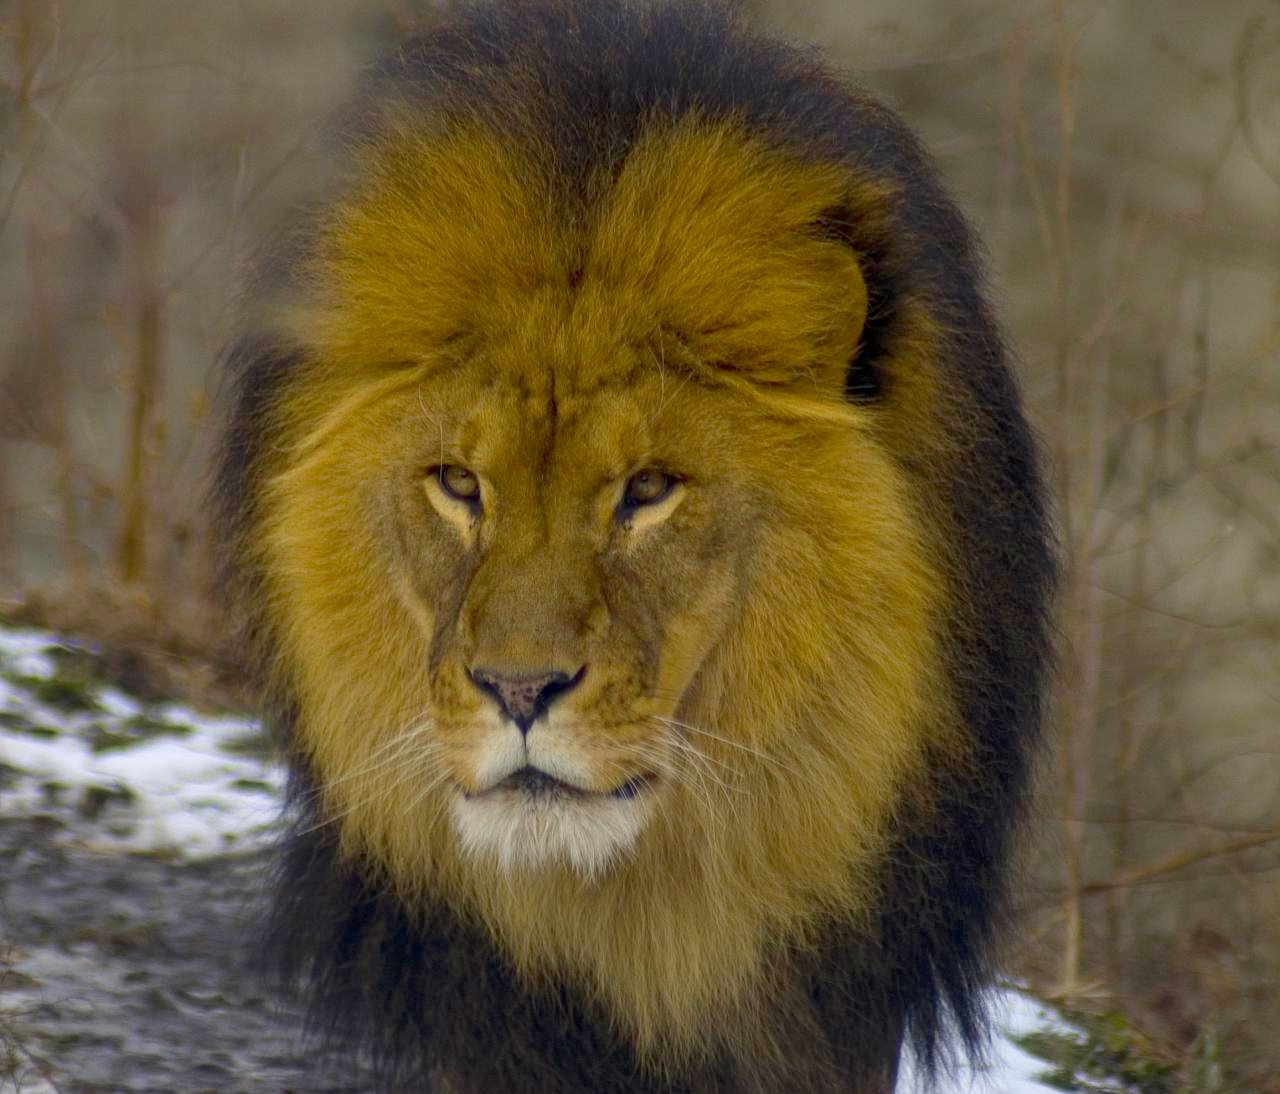 The Lion's Mane by BIG Slow